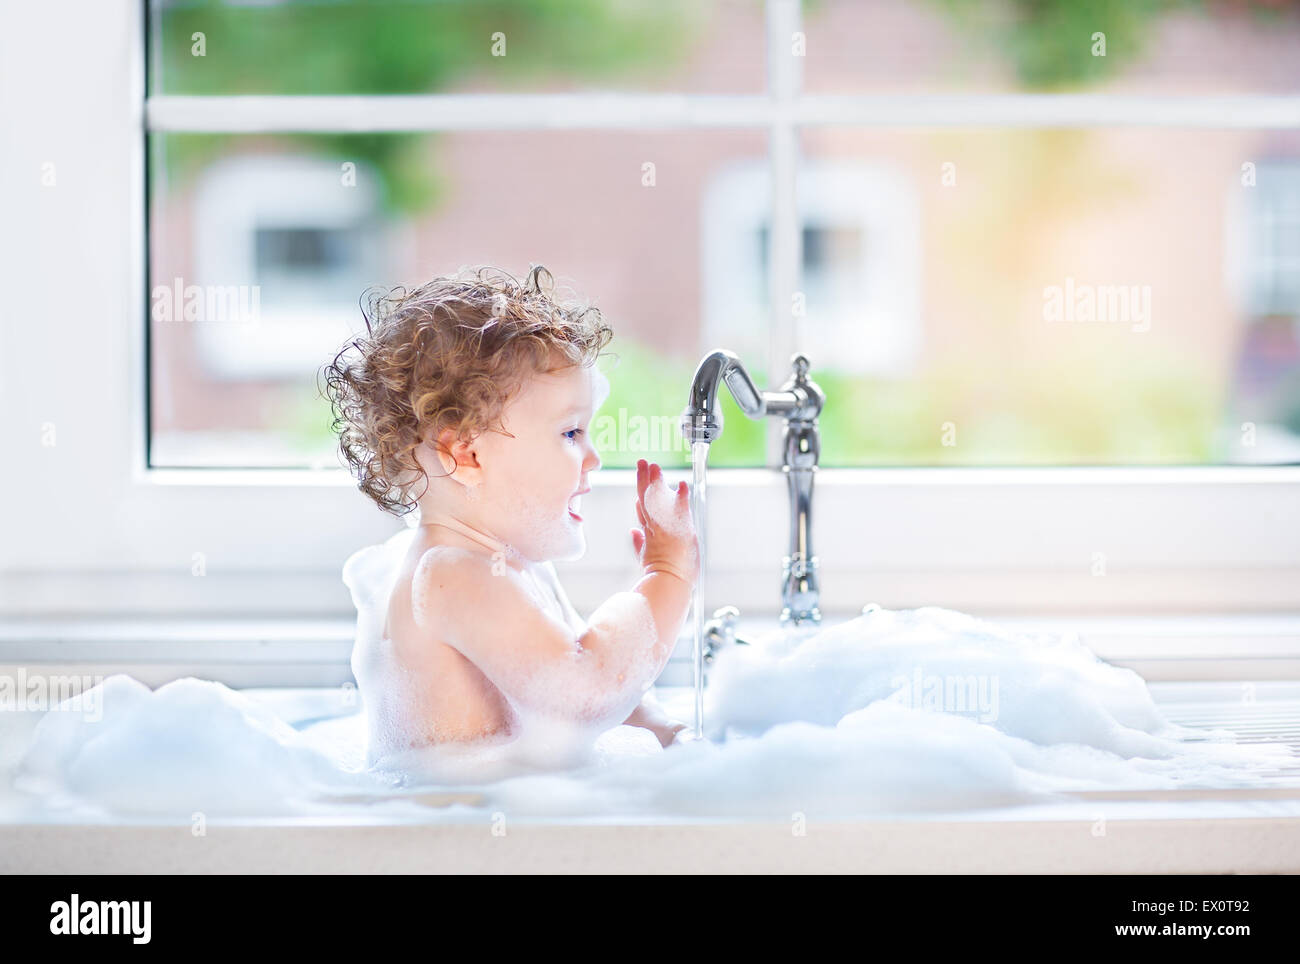 Funny happy baby girl playing in a kitchen sink full with foam next to a window - Stock Image